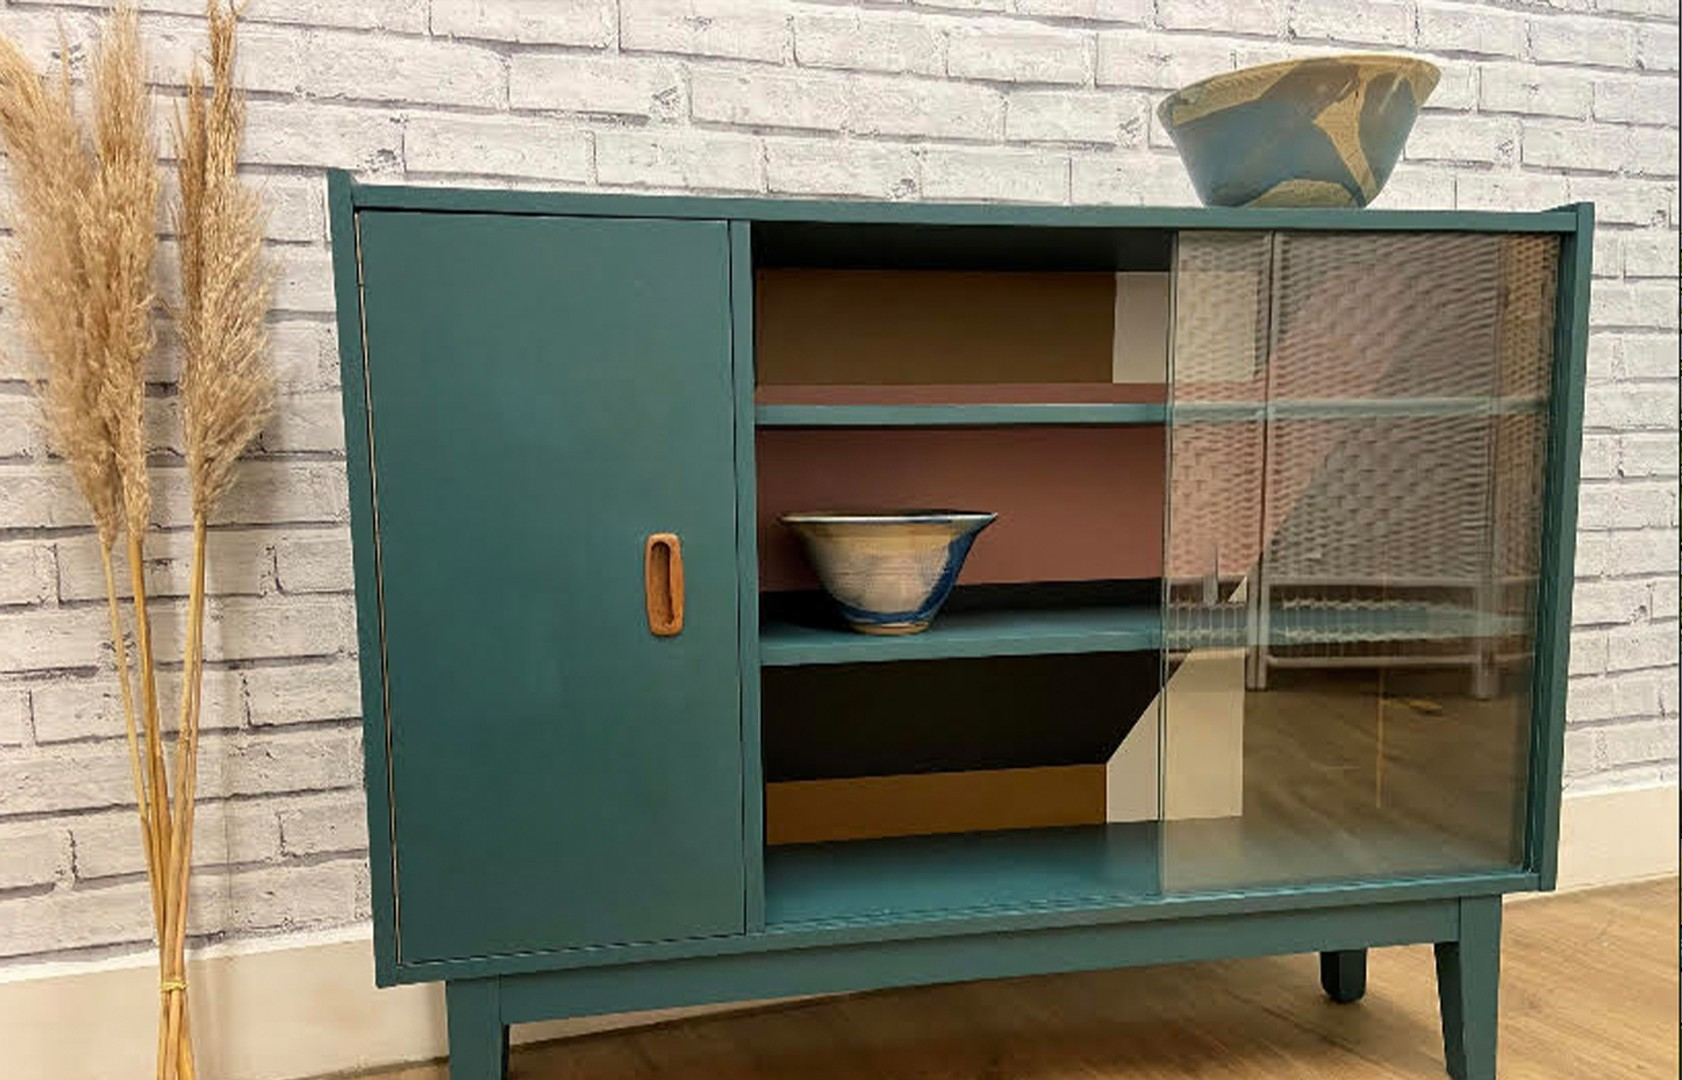 An up-cycled sideboard by The Upcycled Trading Company